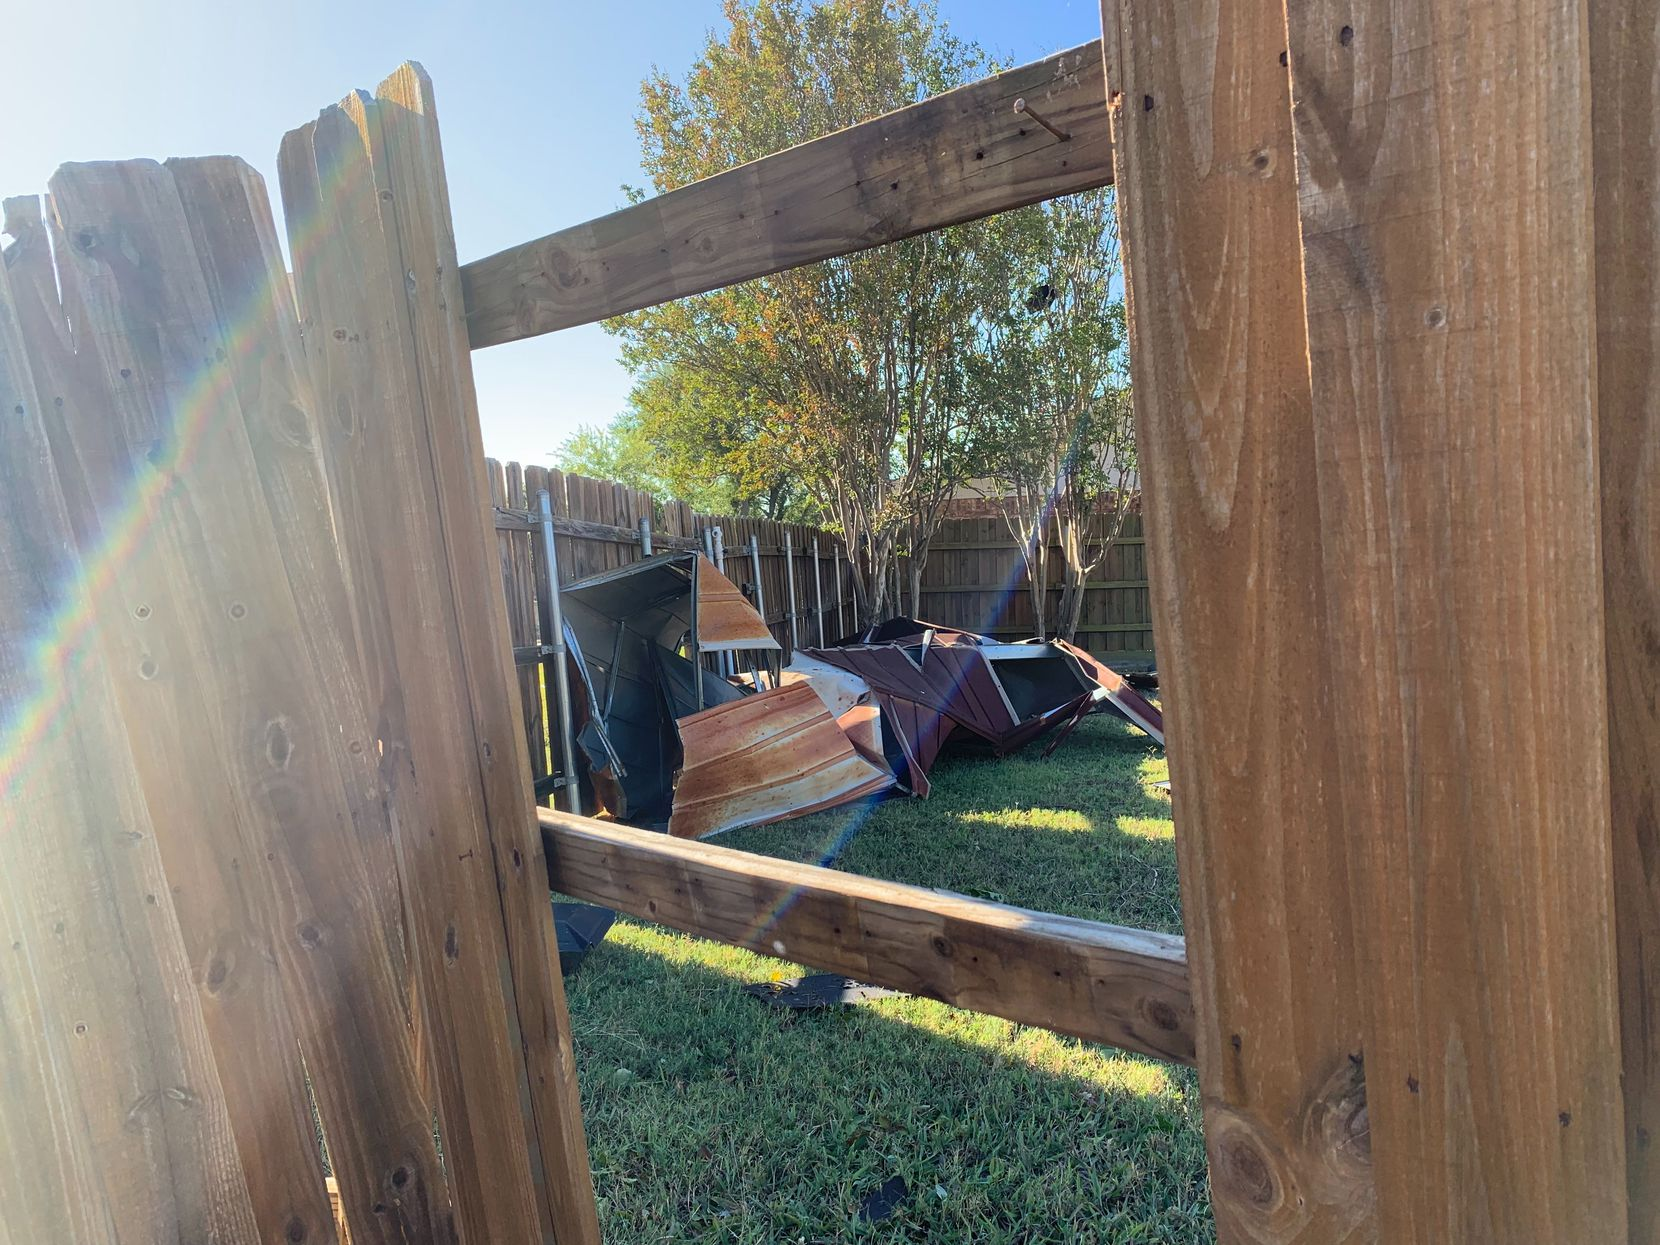 Maria Luisa Garbe of Richardson said she in thankful her neighbors weren't injured and that her home suffered only minor damage. Her neighbors' homes are missing roofs and have extensive water damage. Their homes might not be livable, she said. This photo of her fence and a shed that fell into her yard were taken Monday, October, 21, 2019.